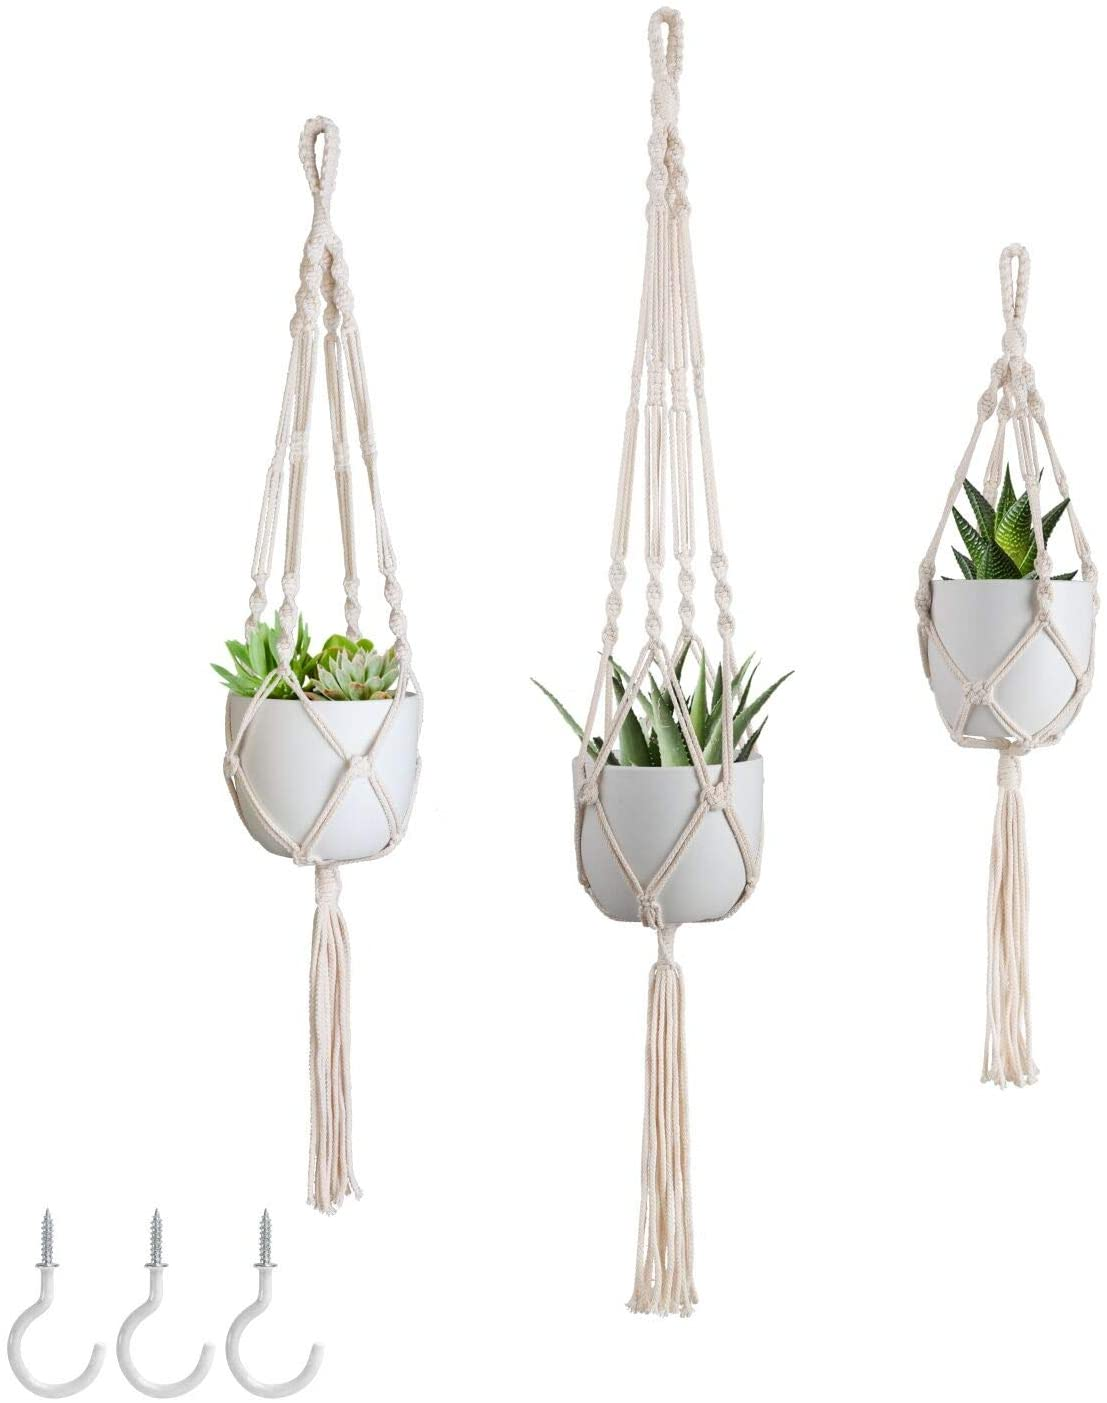 Mokof Macrame Plant Hangers for Indoor Plants with Hooks, 3 Different Sizes